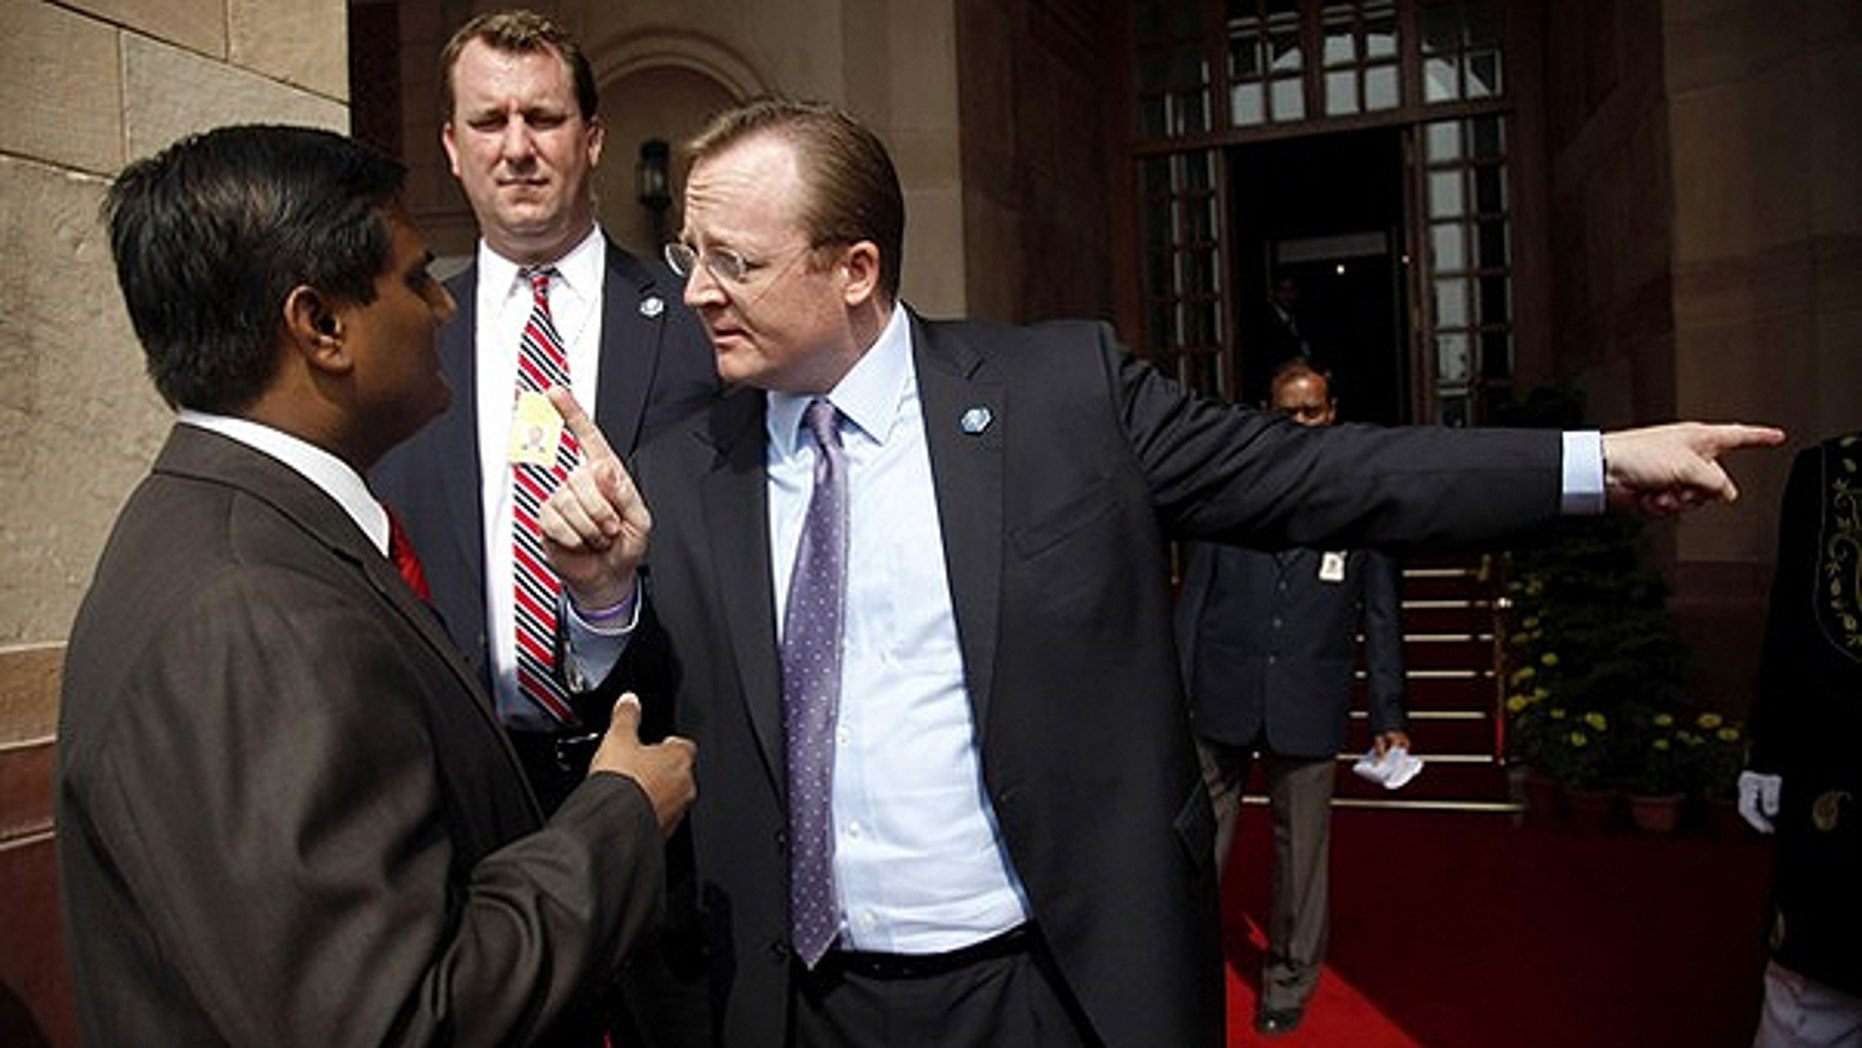 Nov. 8: White House press secretary Robert Gibbs (R) argues with an official from the Indian Prime Minister's office after the travelling White House press pool were initially refused entry to the bilateral meeting between U.S. President Barack Obama and India's Prime Minister Manmohan Singh at Hyderabad House in New Delhi.